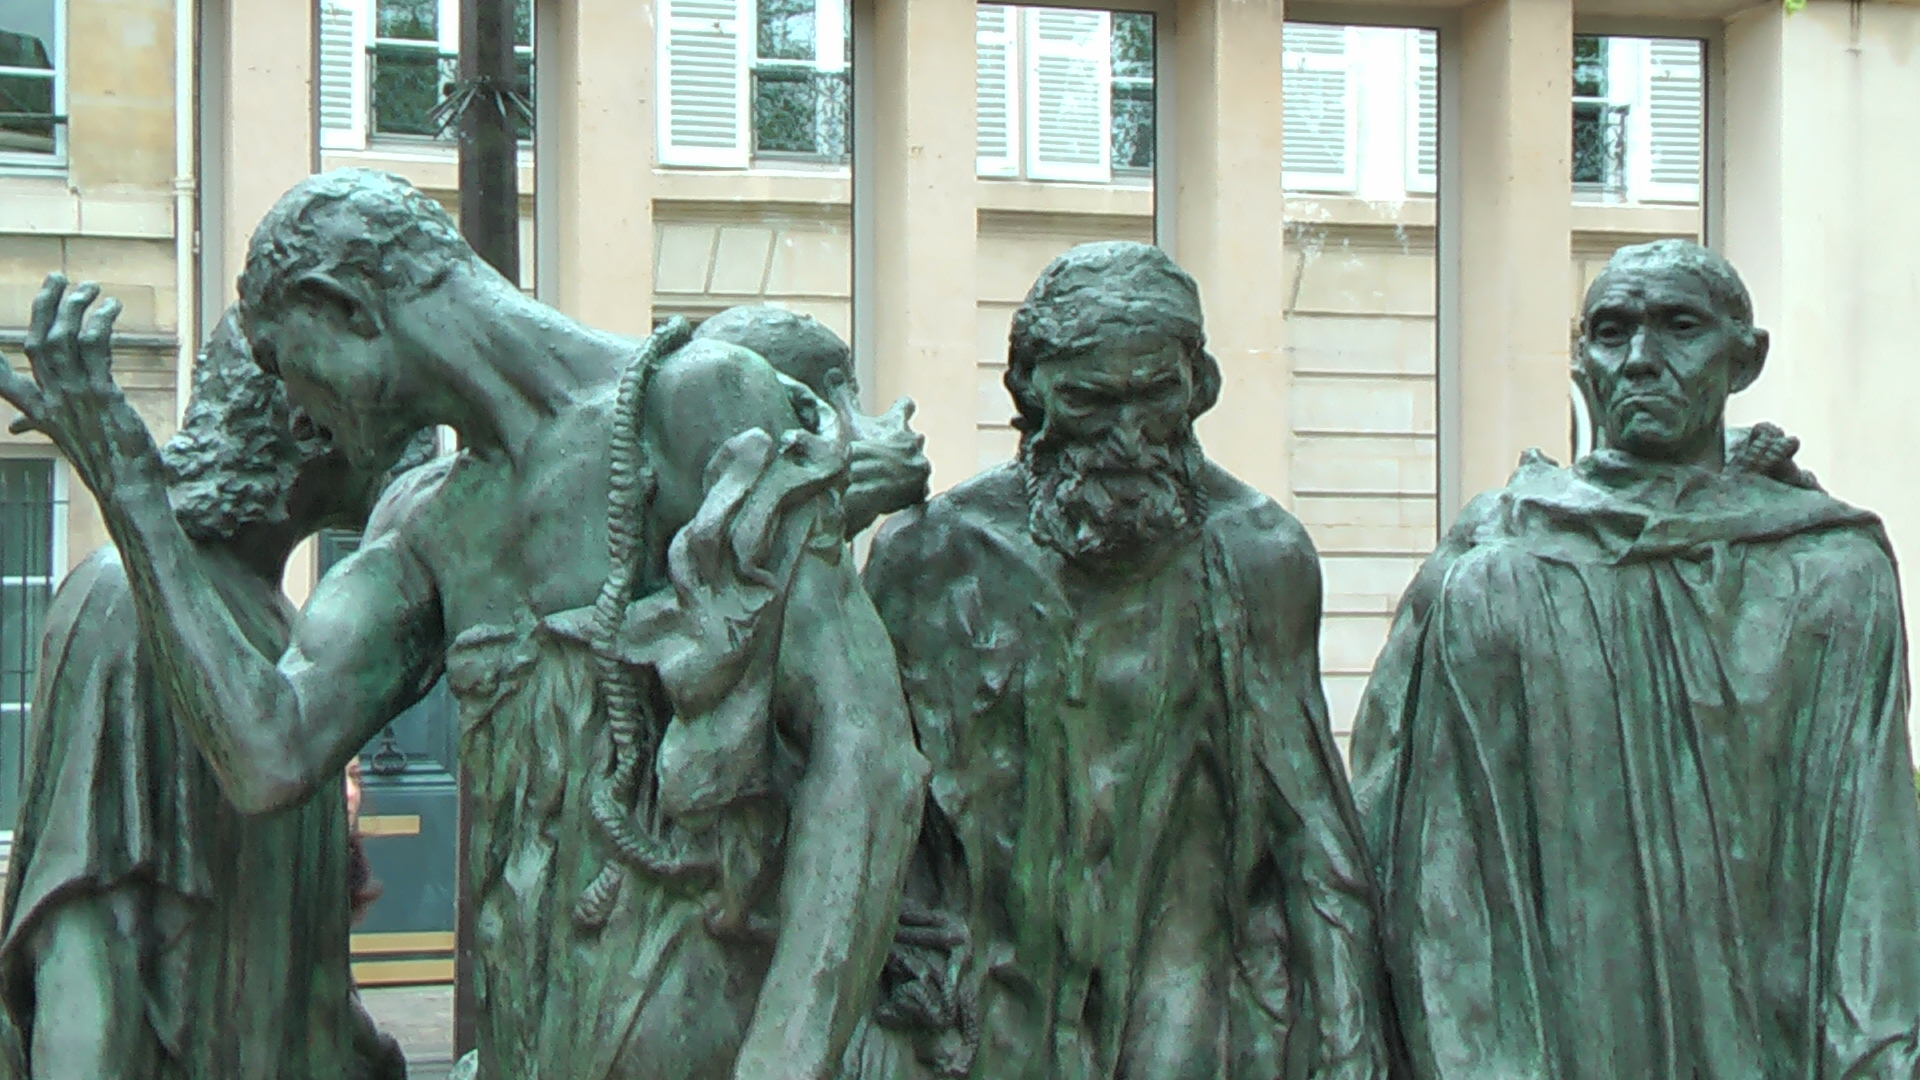 Museu Rodin e as Catacumbas de Paris